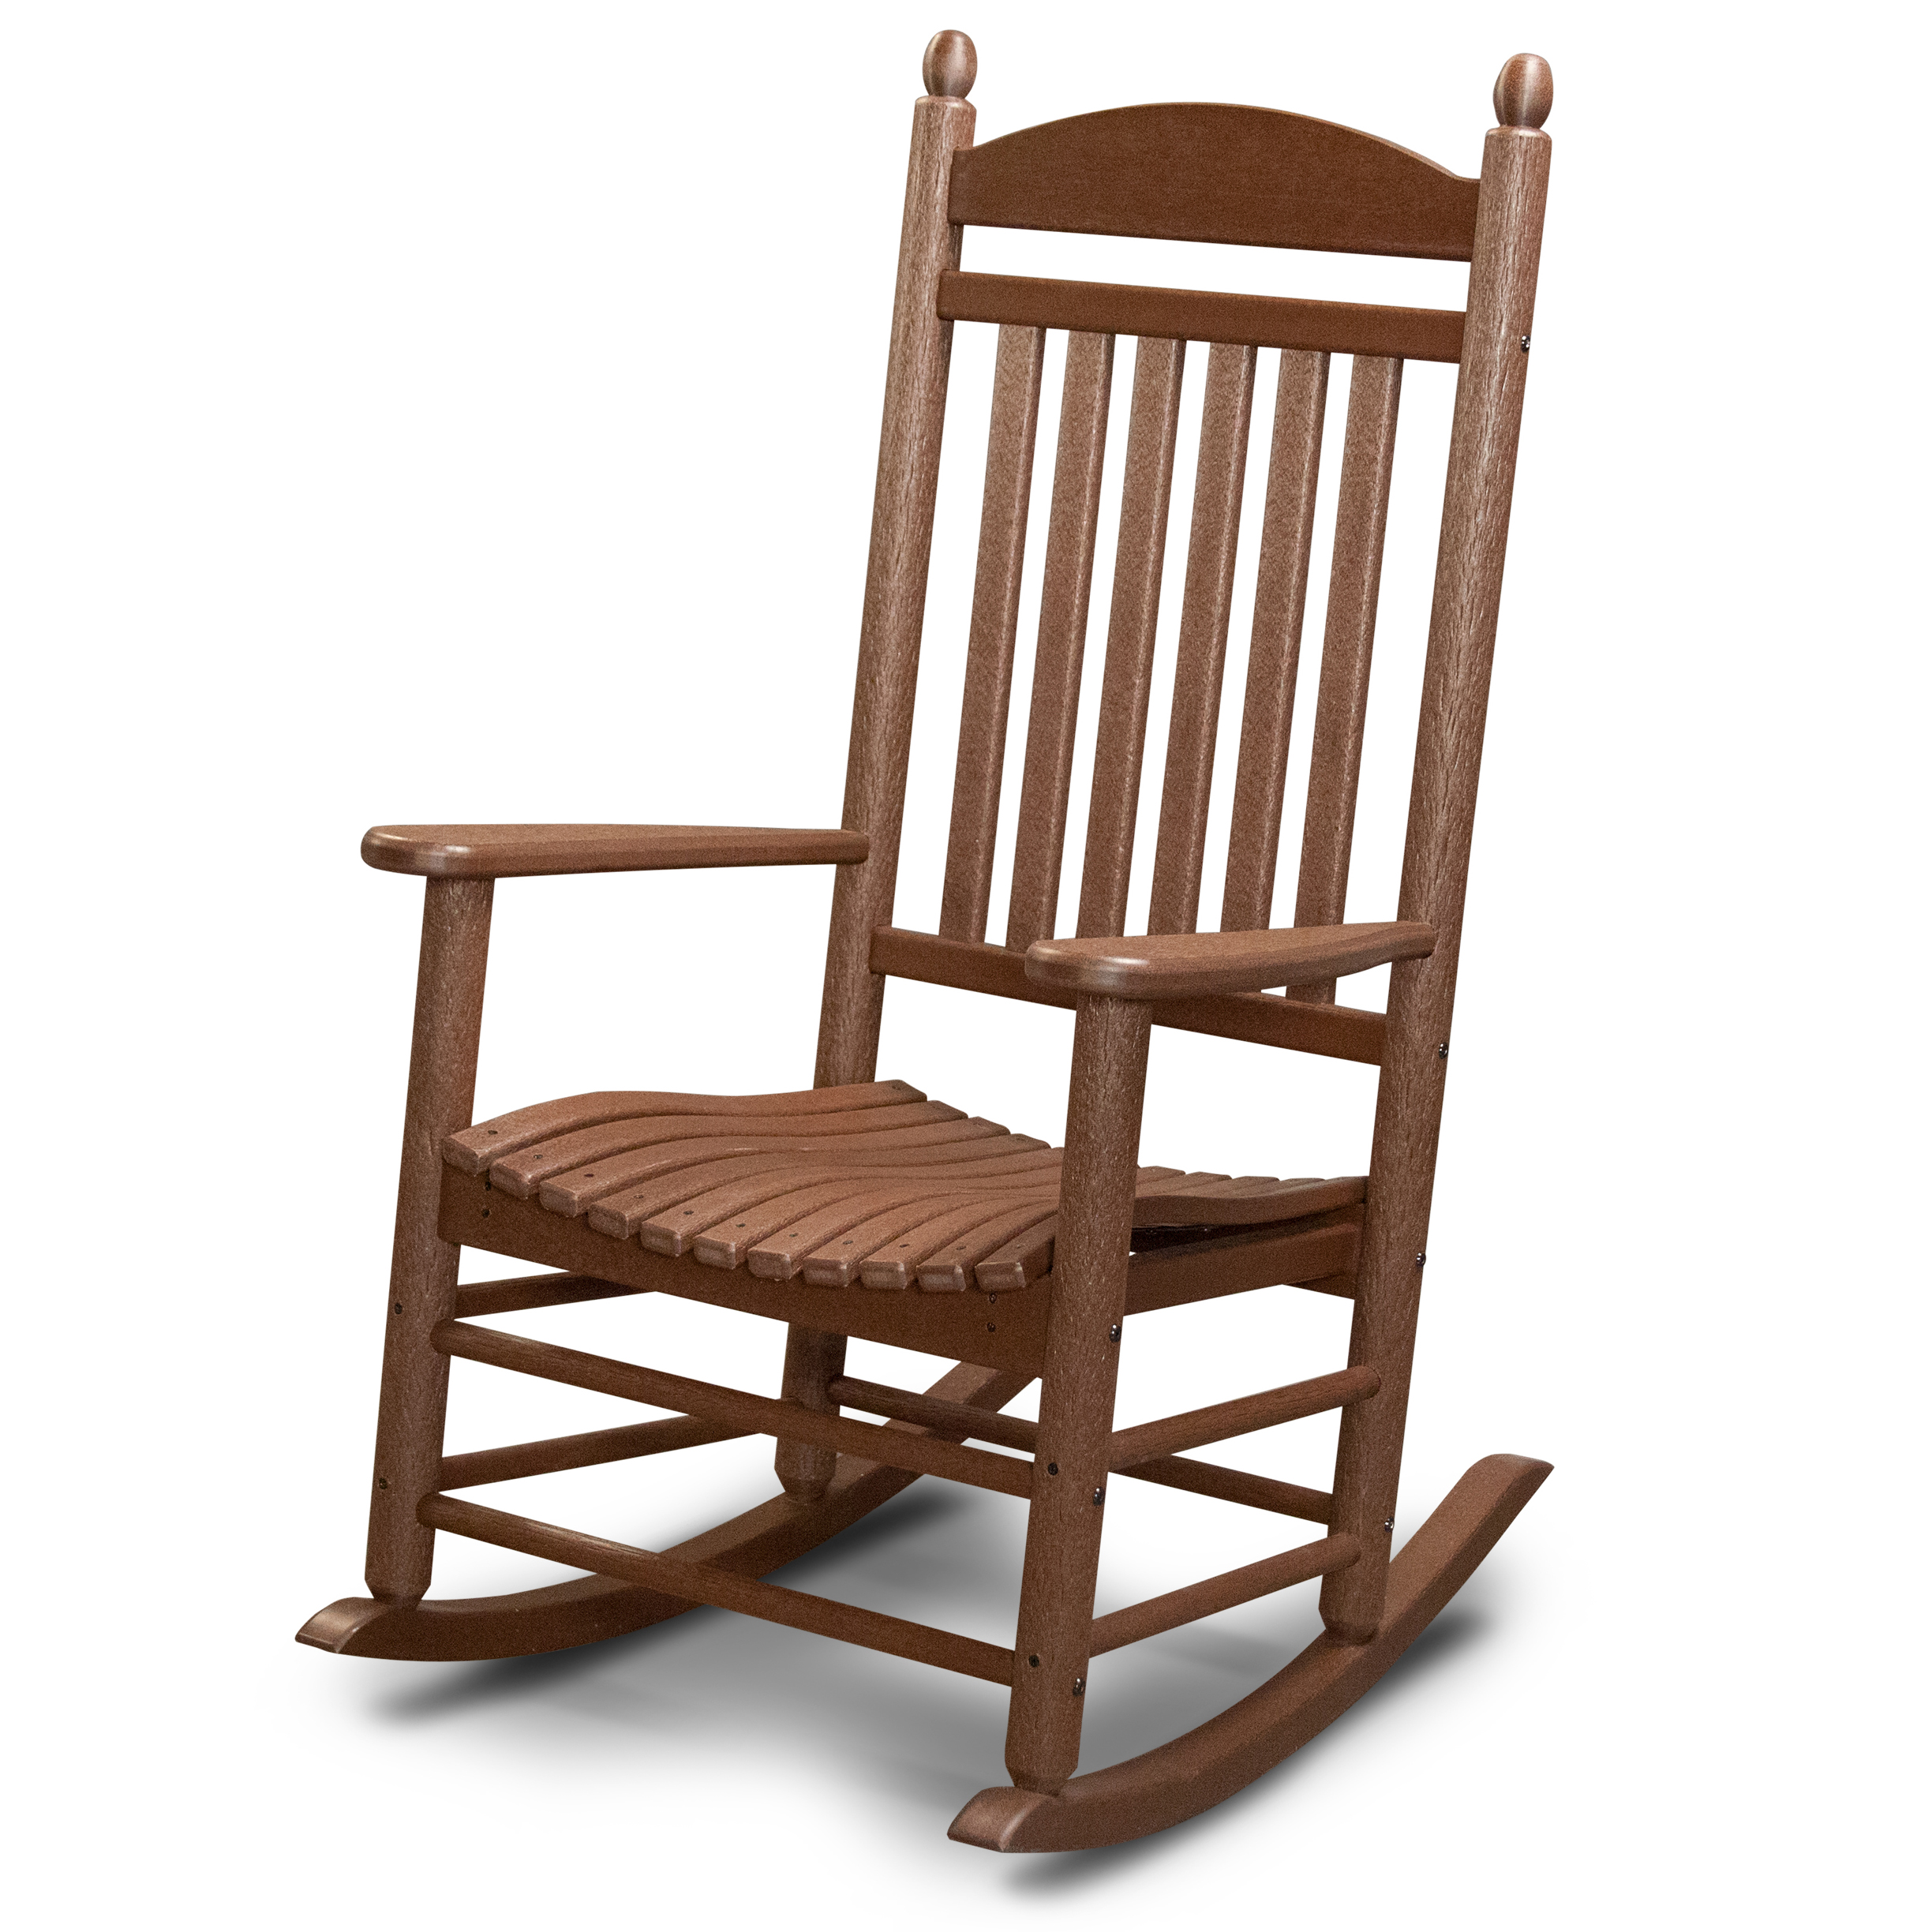 Outdoor furniture all chairs rocking chairs jefferson outdoor rocking - Polywood Reg All Weather Jefferson Slat Rocker Outdoor Furniture Rocking Chairs Cracker Barrel Old Country Store